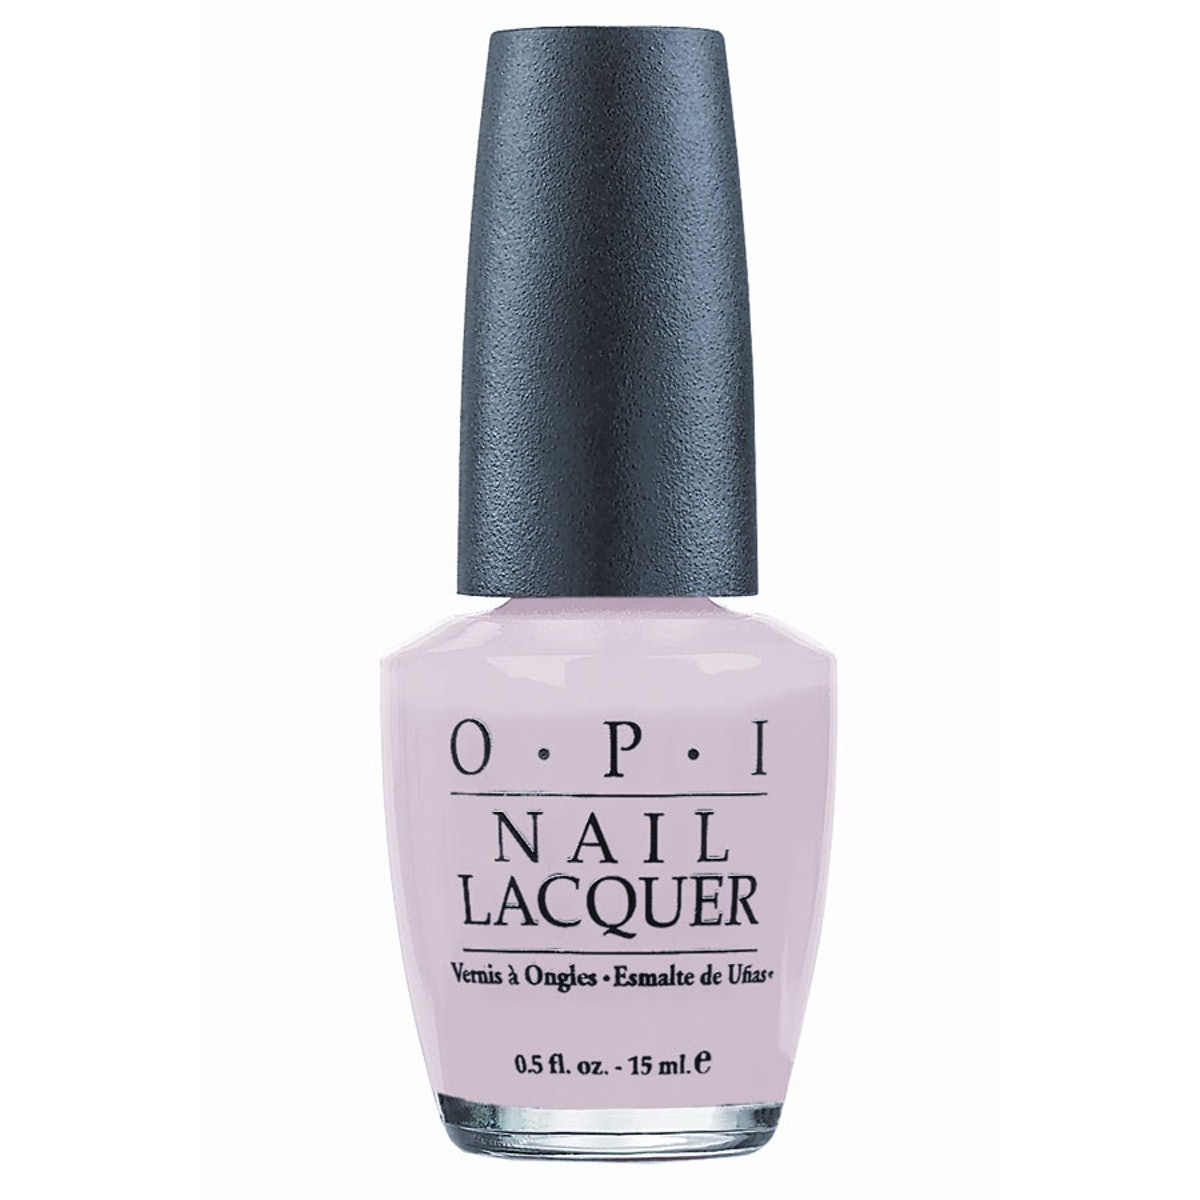 OPI Nail Polish in Coney Island Cotton Candy